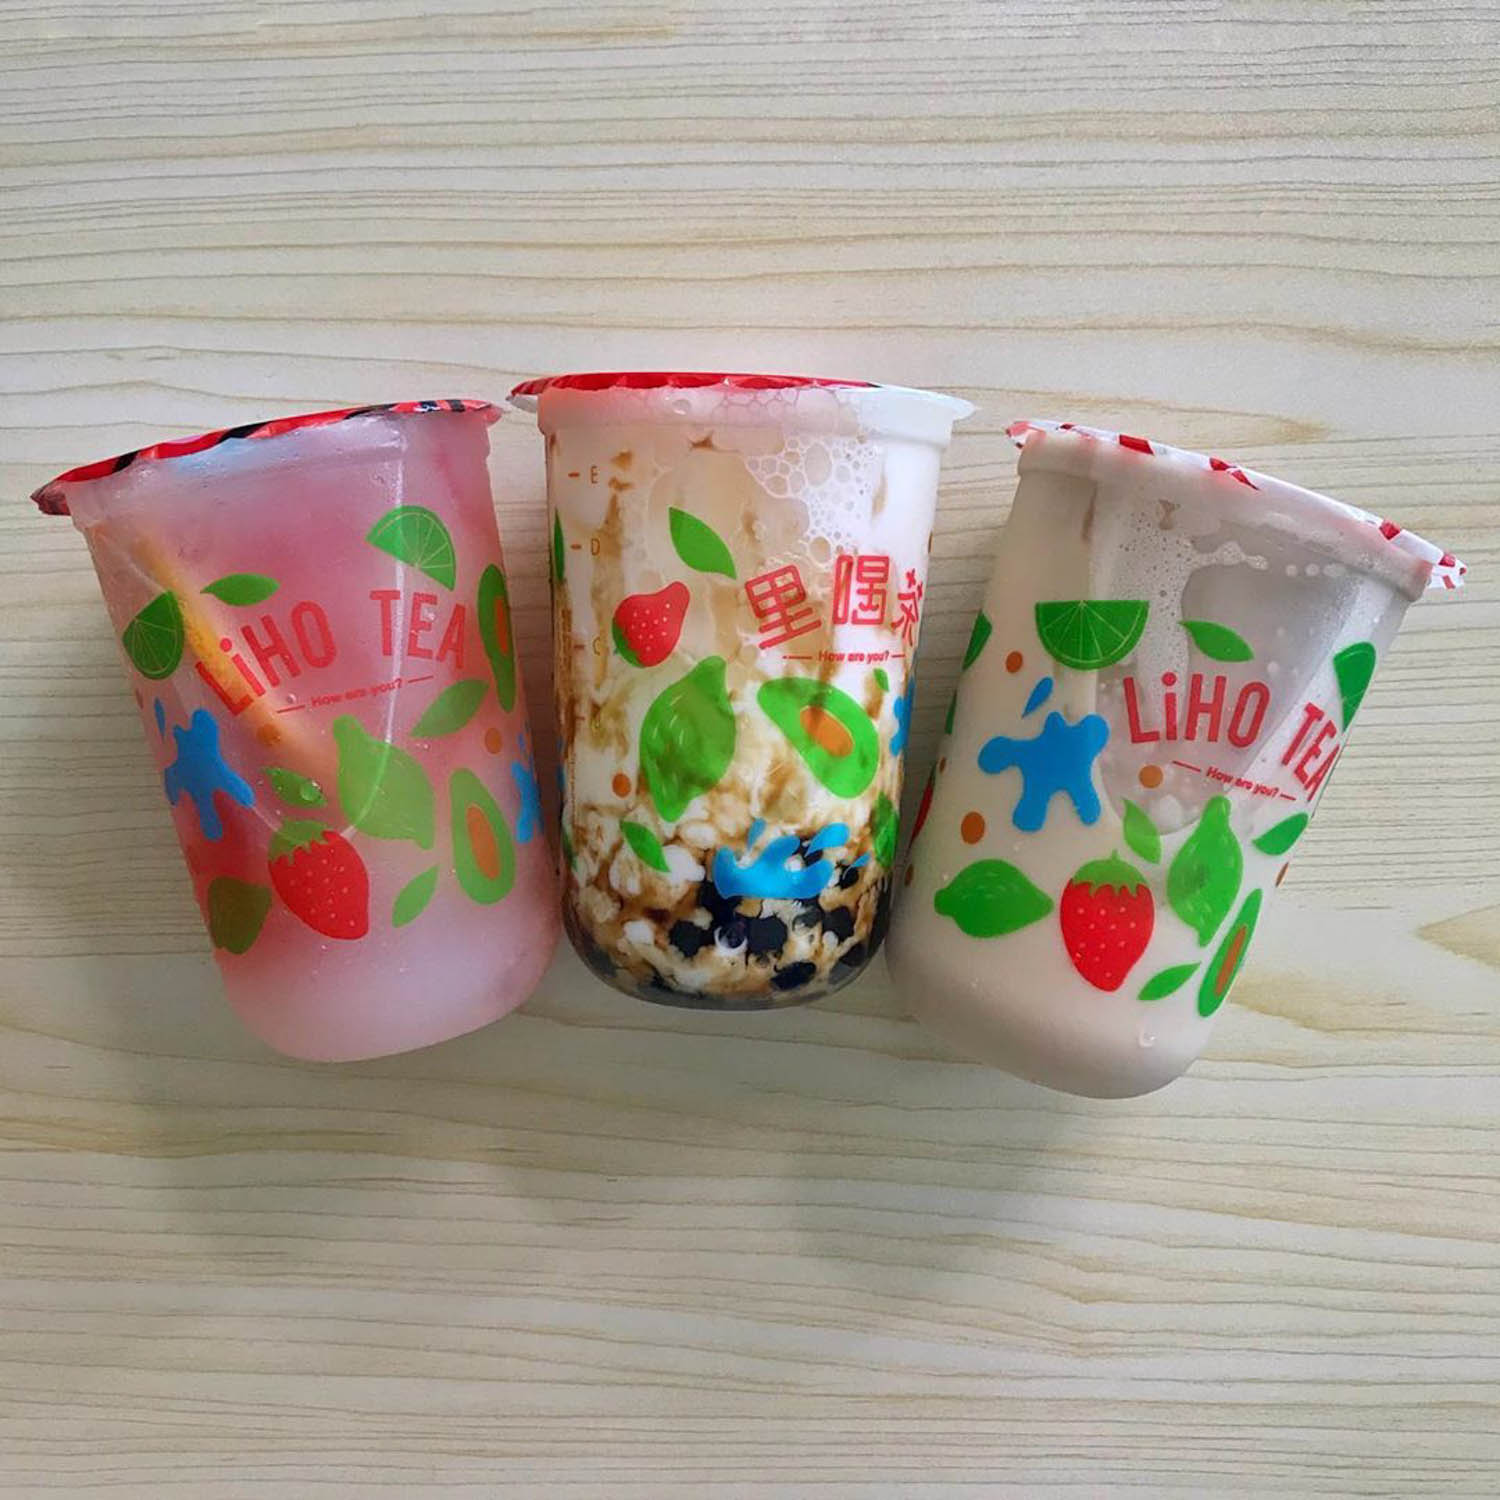 liho cheese ice cream - liho bbt